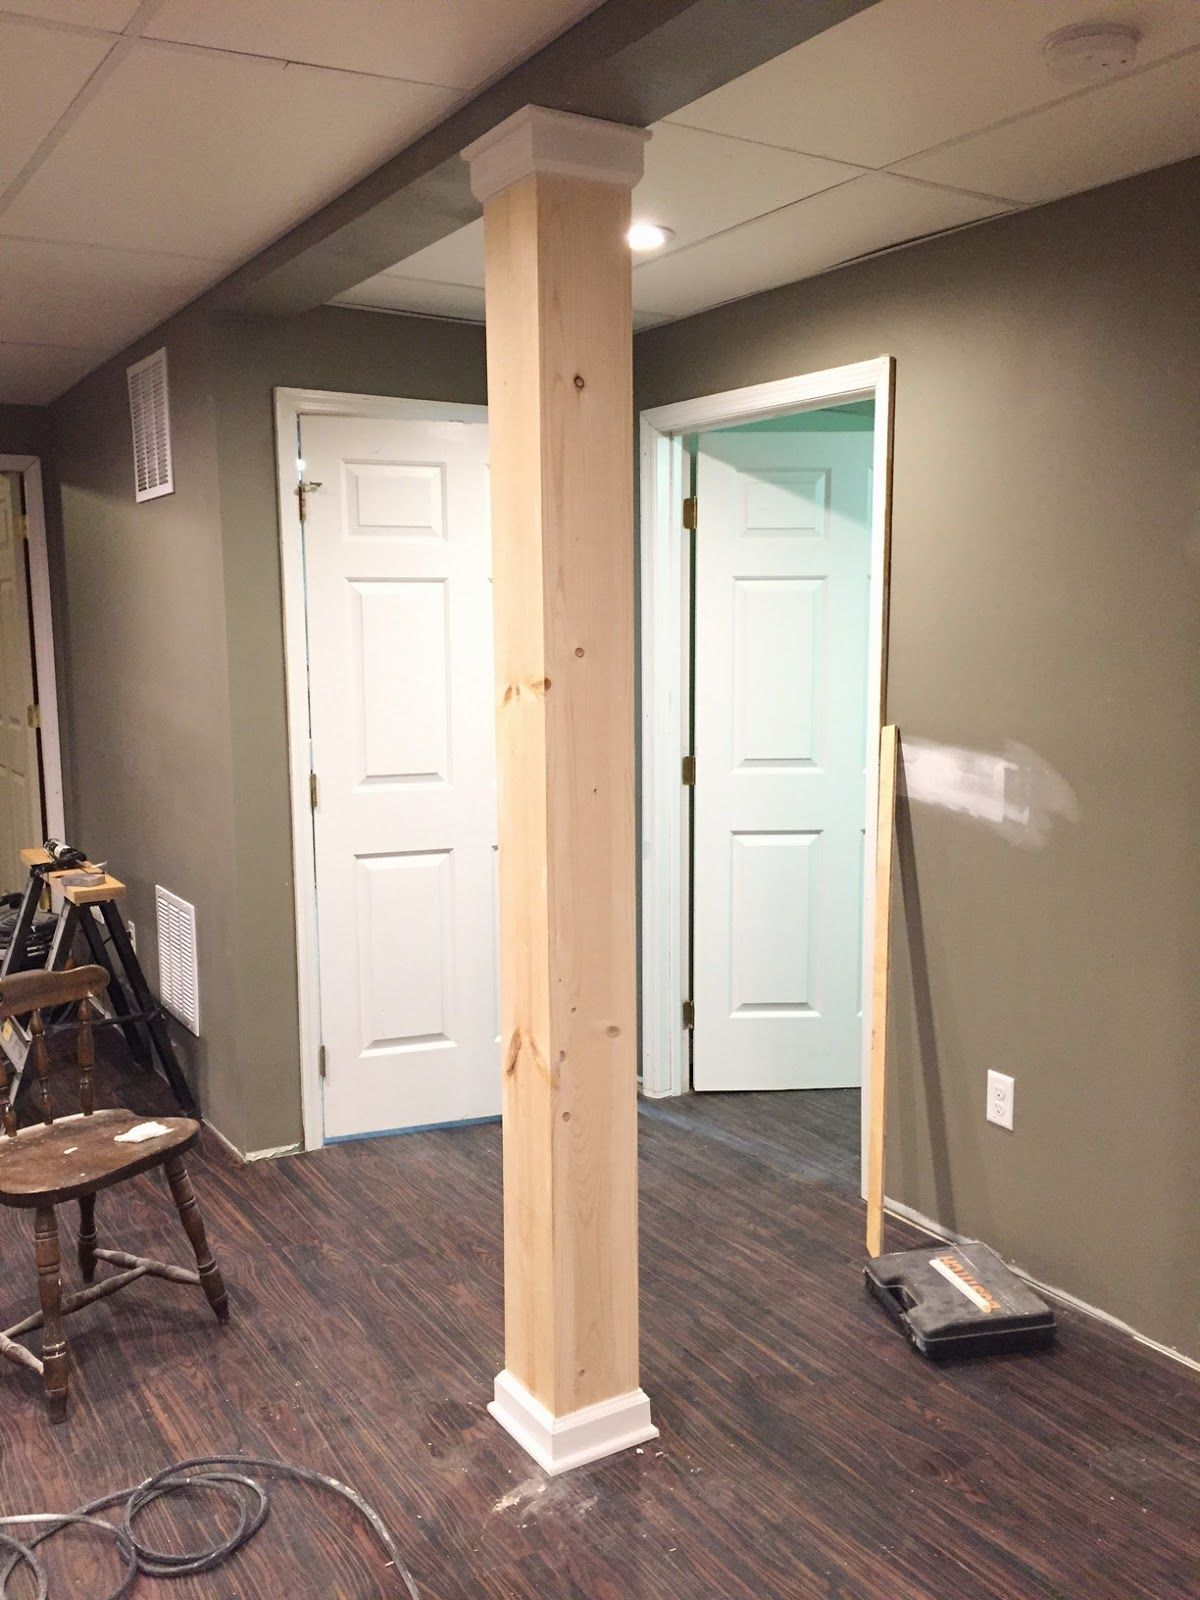 over on dover a post about a post disguising a basement support rh pinterest com